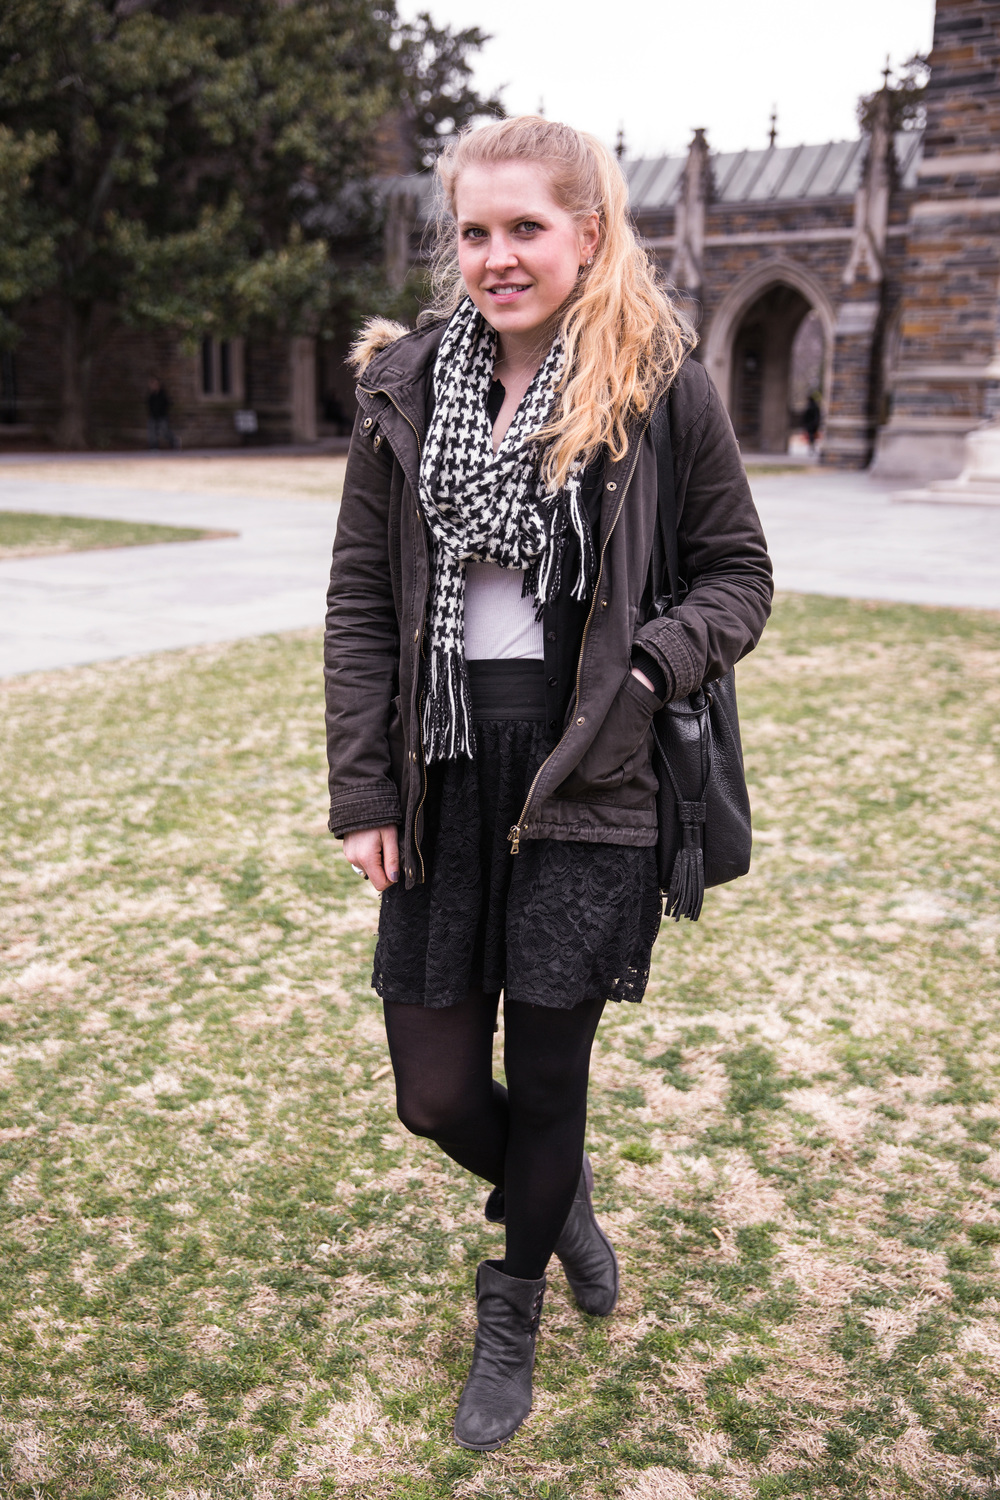 Madeline | Duke University Fur Trimmed Jacket Houndstooth Scarf Black Lace Skirt and Leggings Black Boots